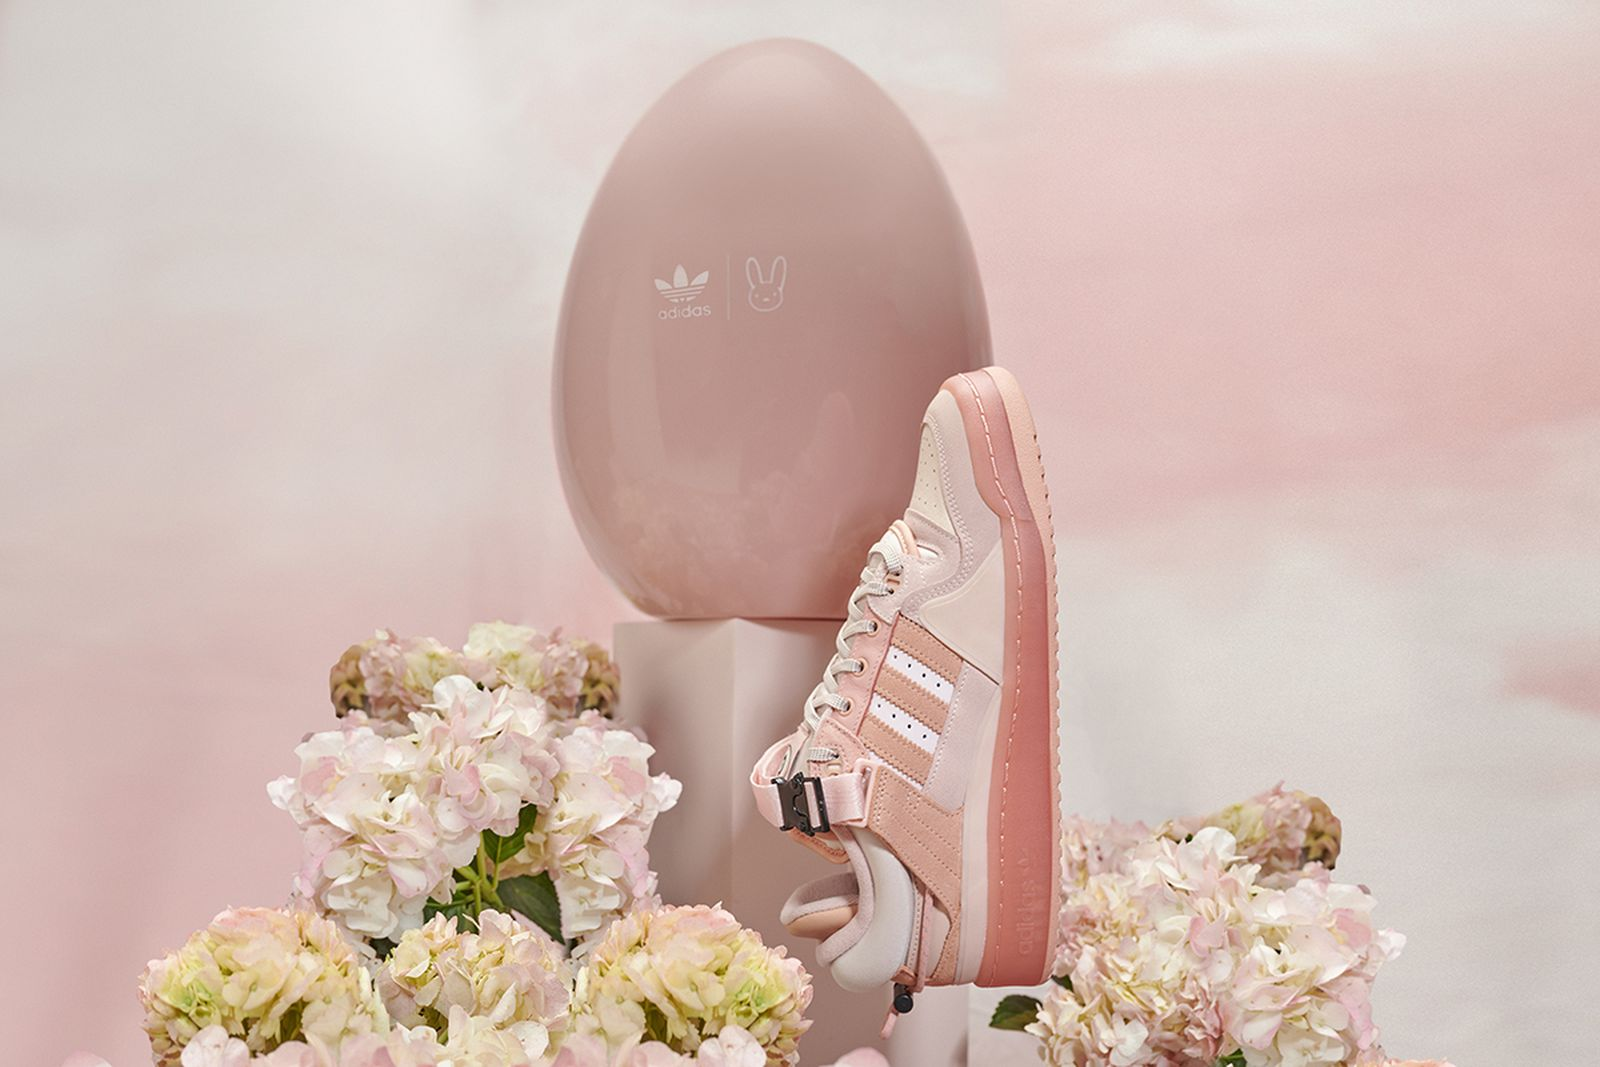 bad-bunny-adidas-forum-buckle-low-pink-release-date-price-01